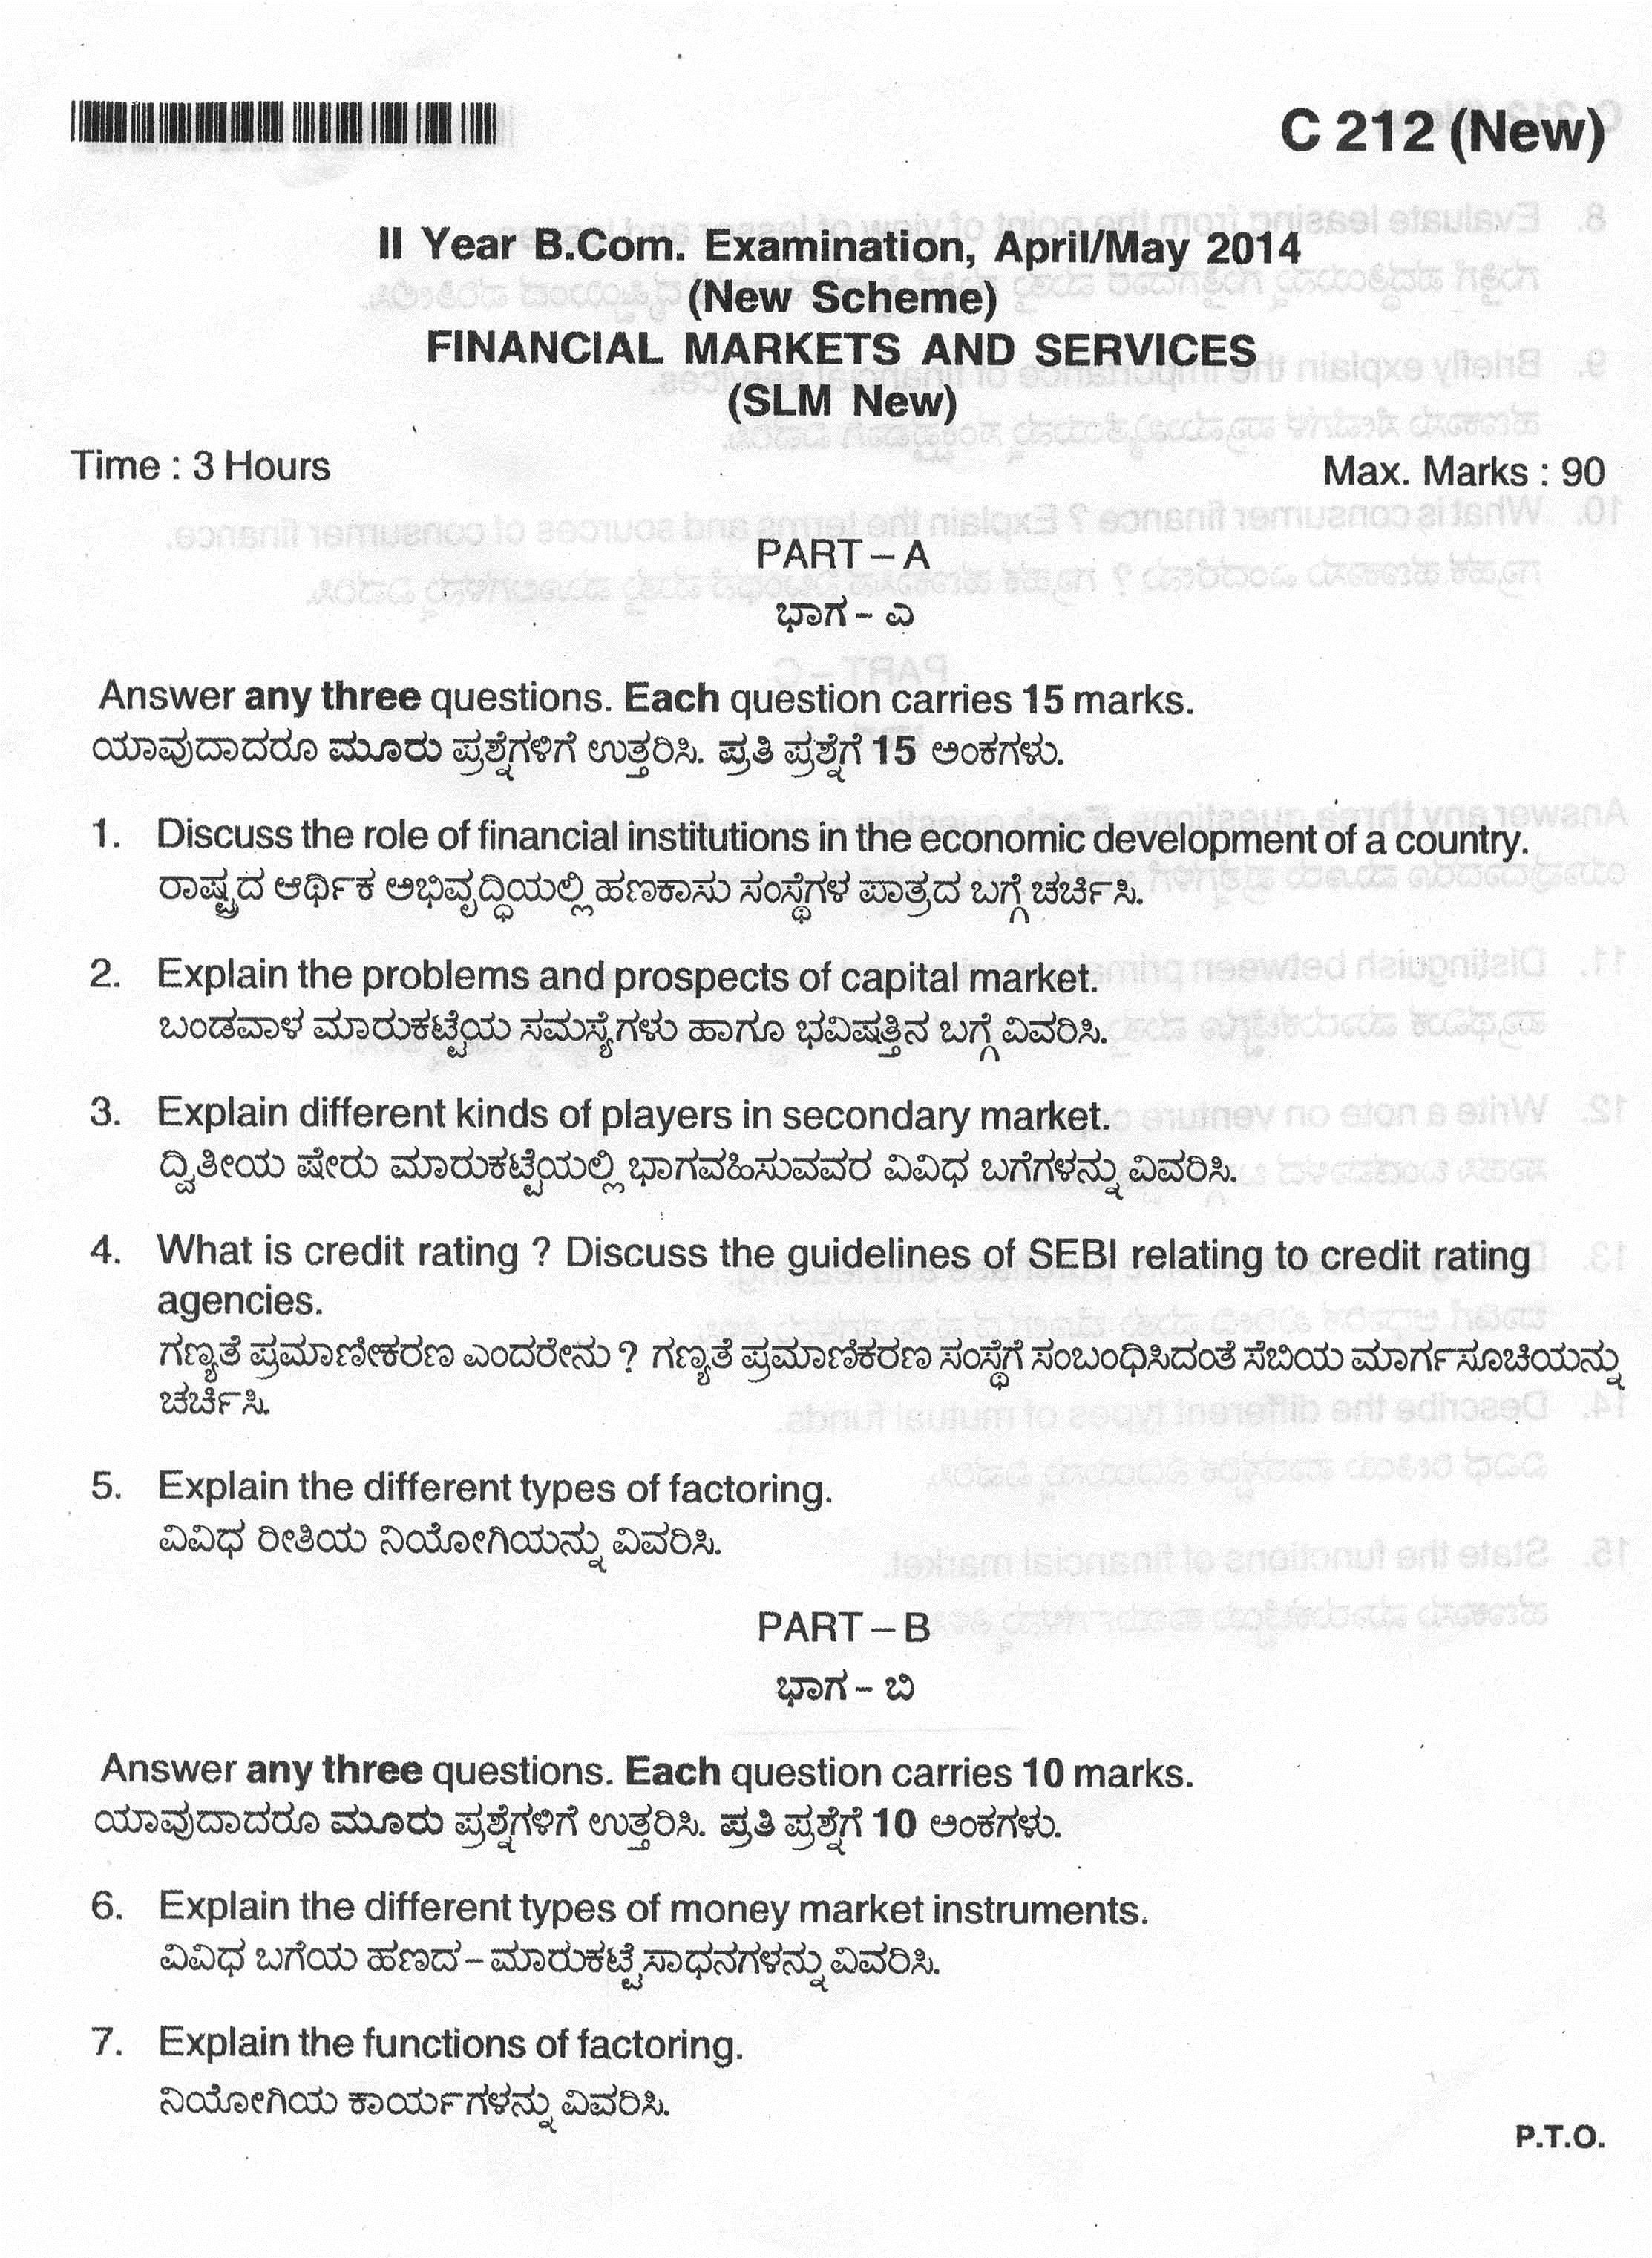 Financial Markets and Services 2nd year 2014 (1